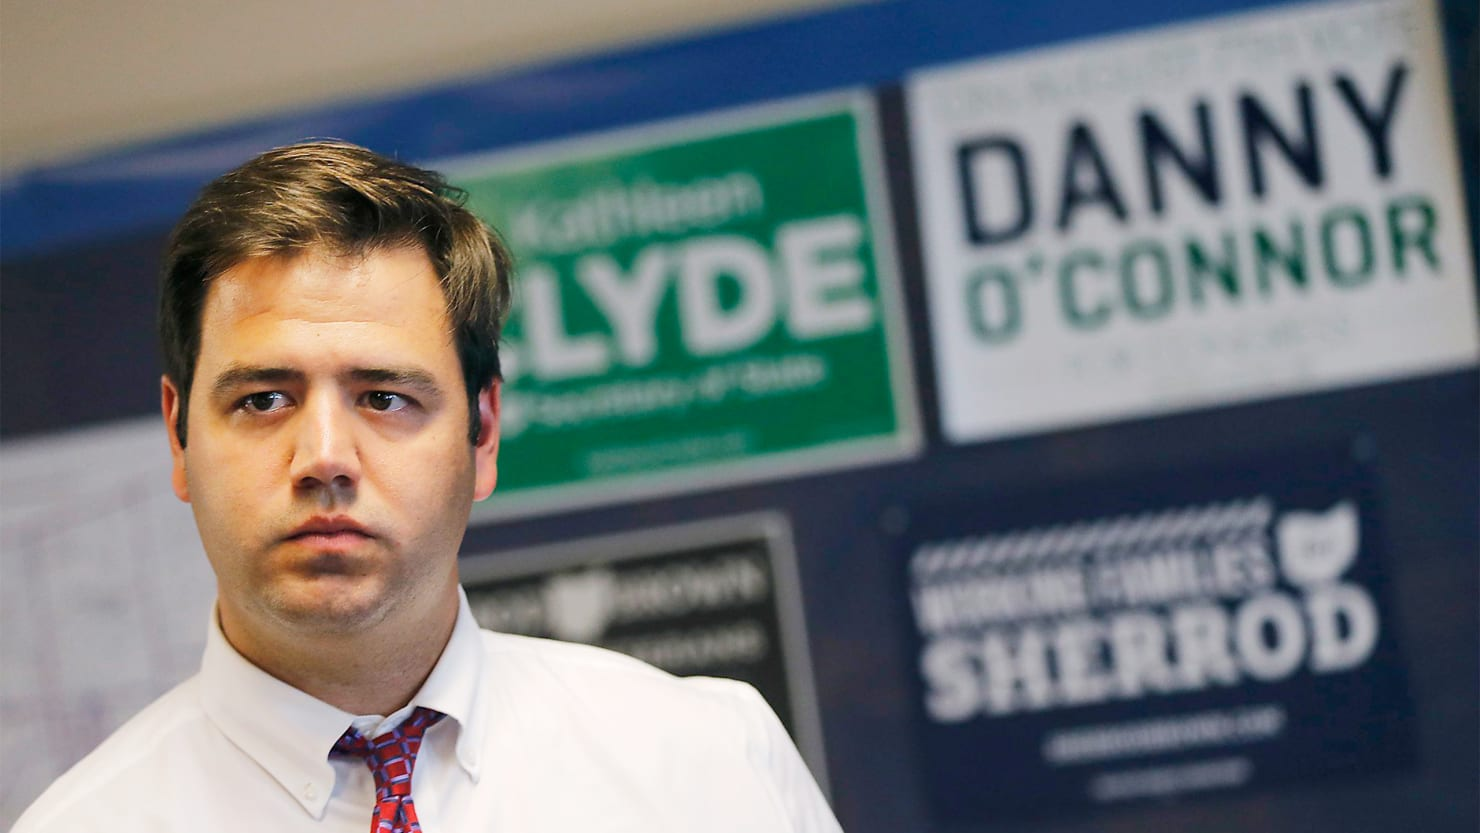 Democrat Danny O'Connor Tries to Do the Impossible in an Ohio Republican Stronghold